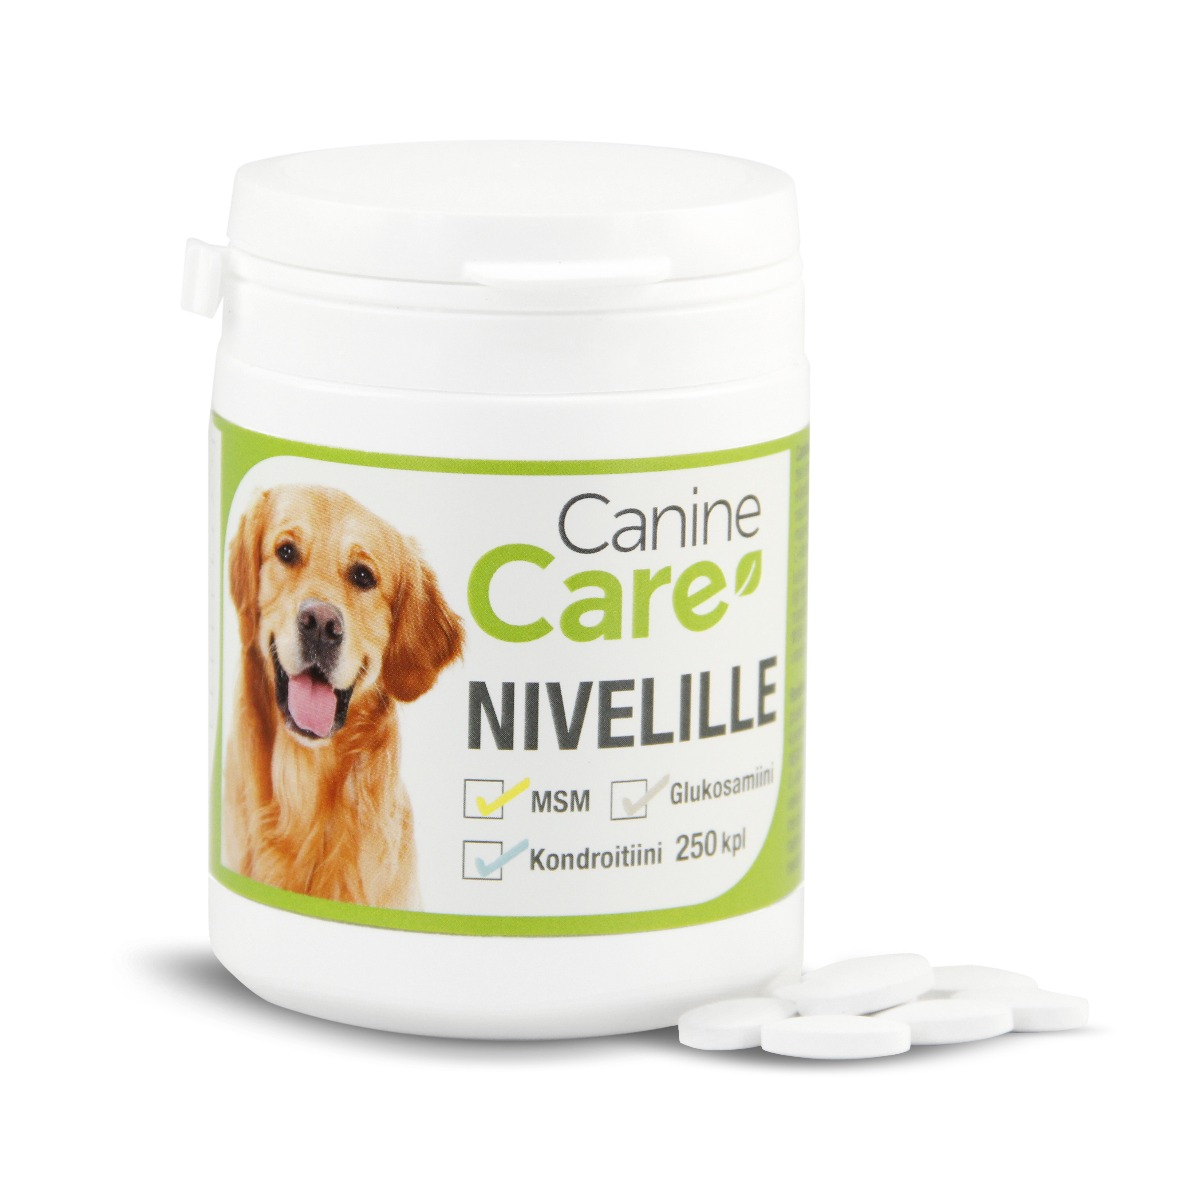 CanineCare Nivelille tabletit